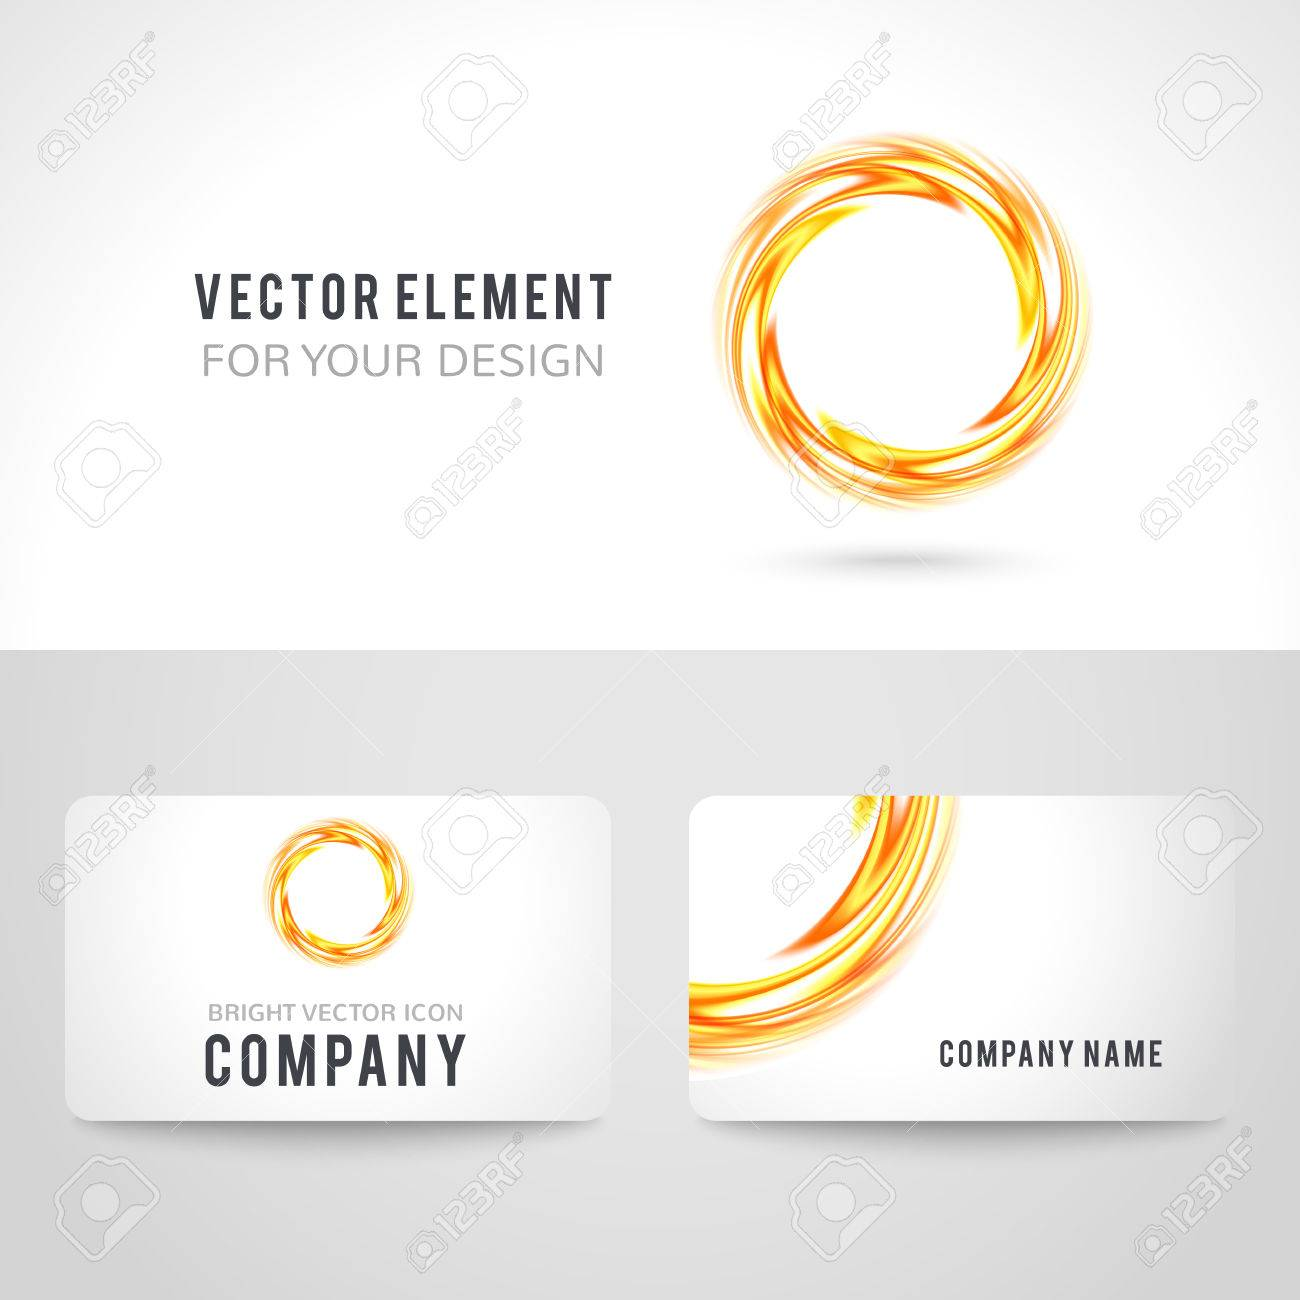 Business Card Template Set Abstract Orange Circle On White Background Vector Illustration For Modern